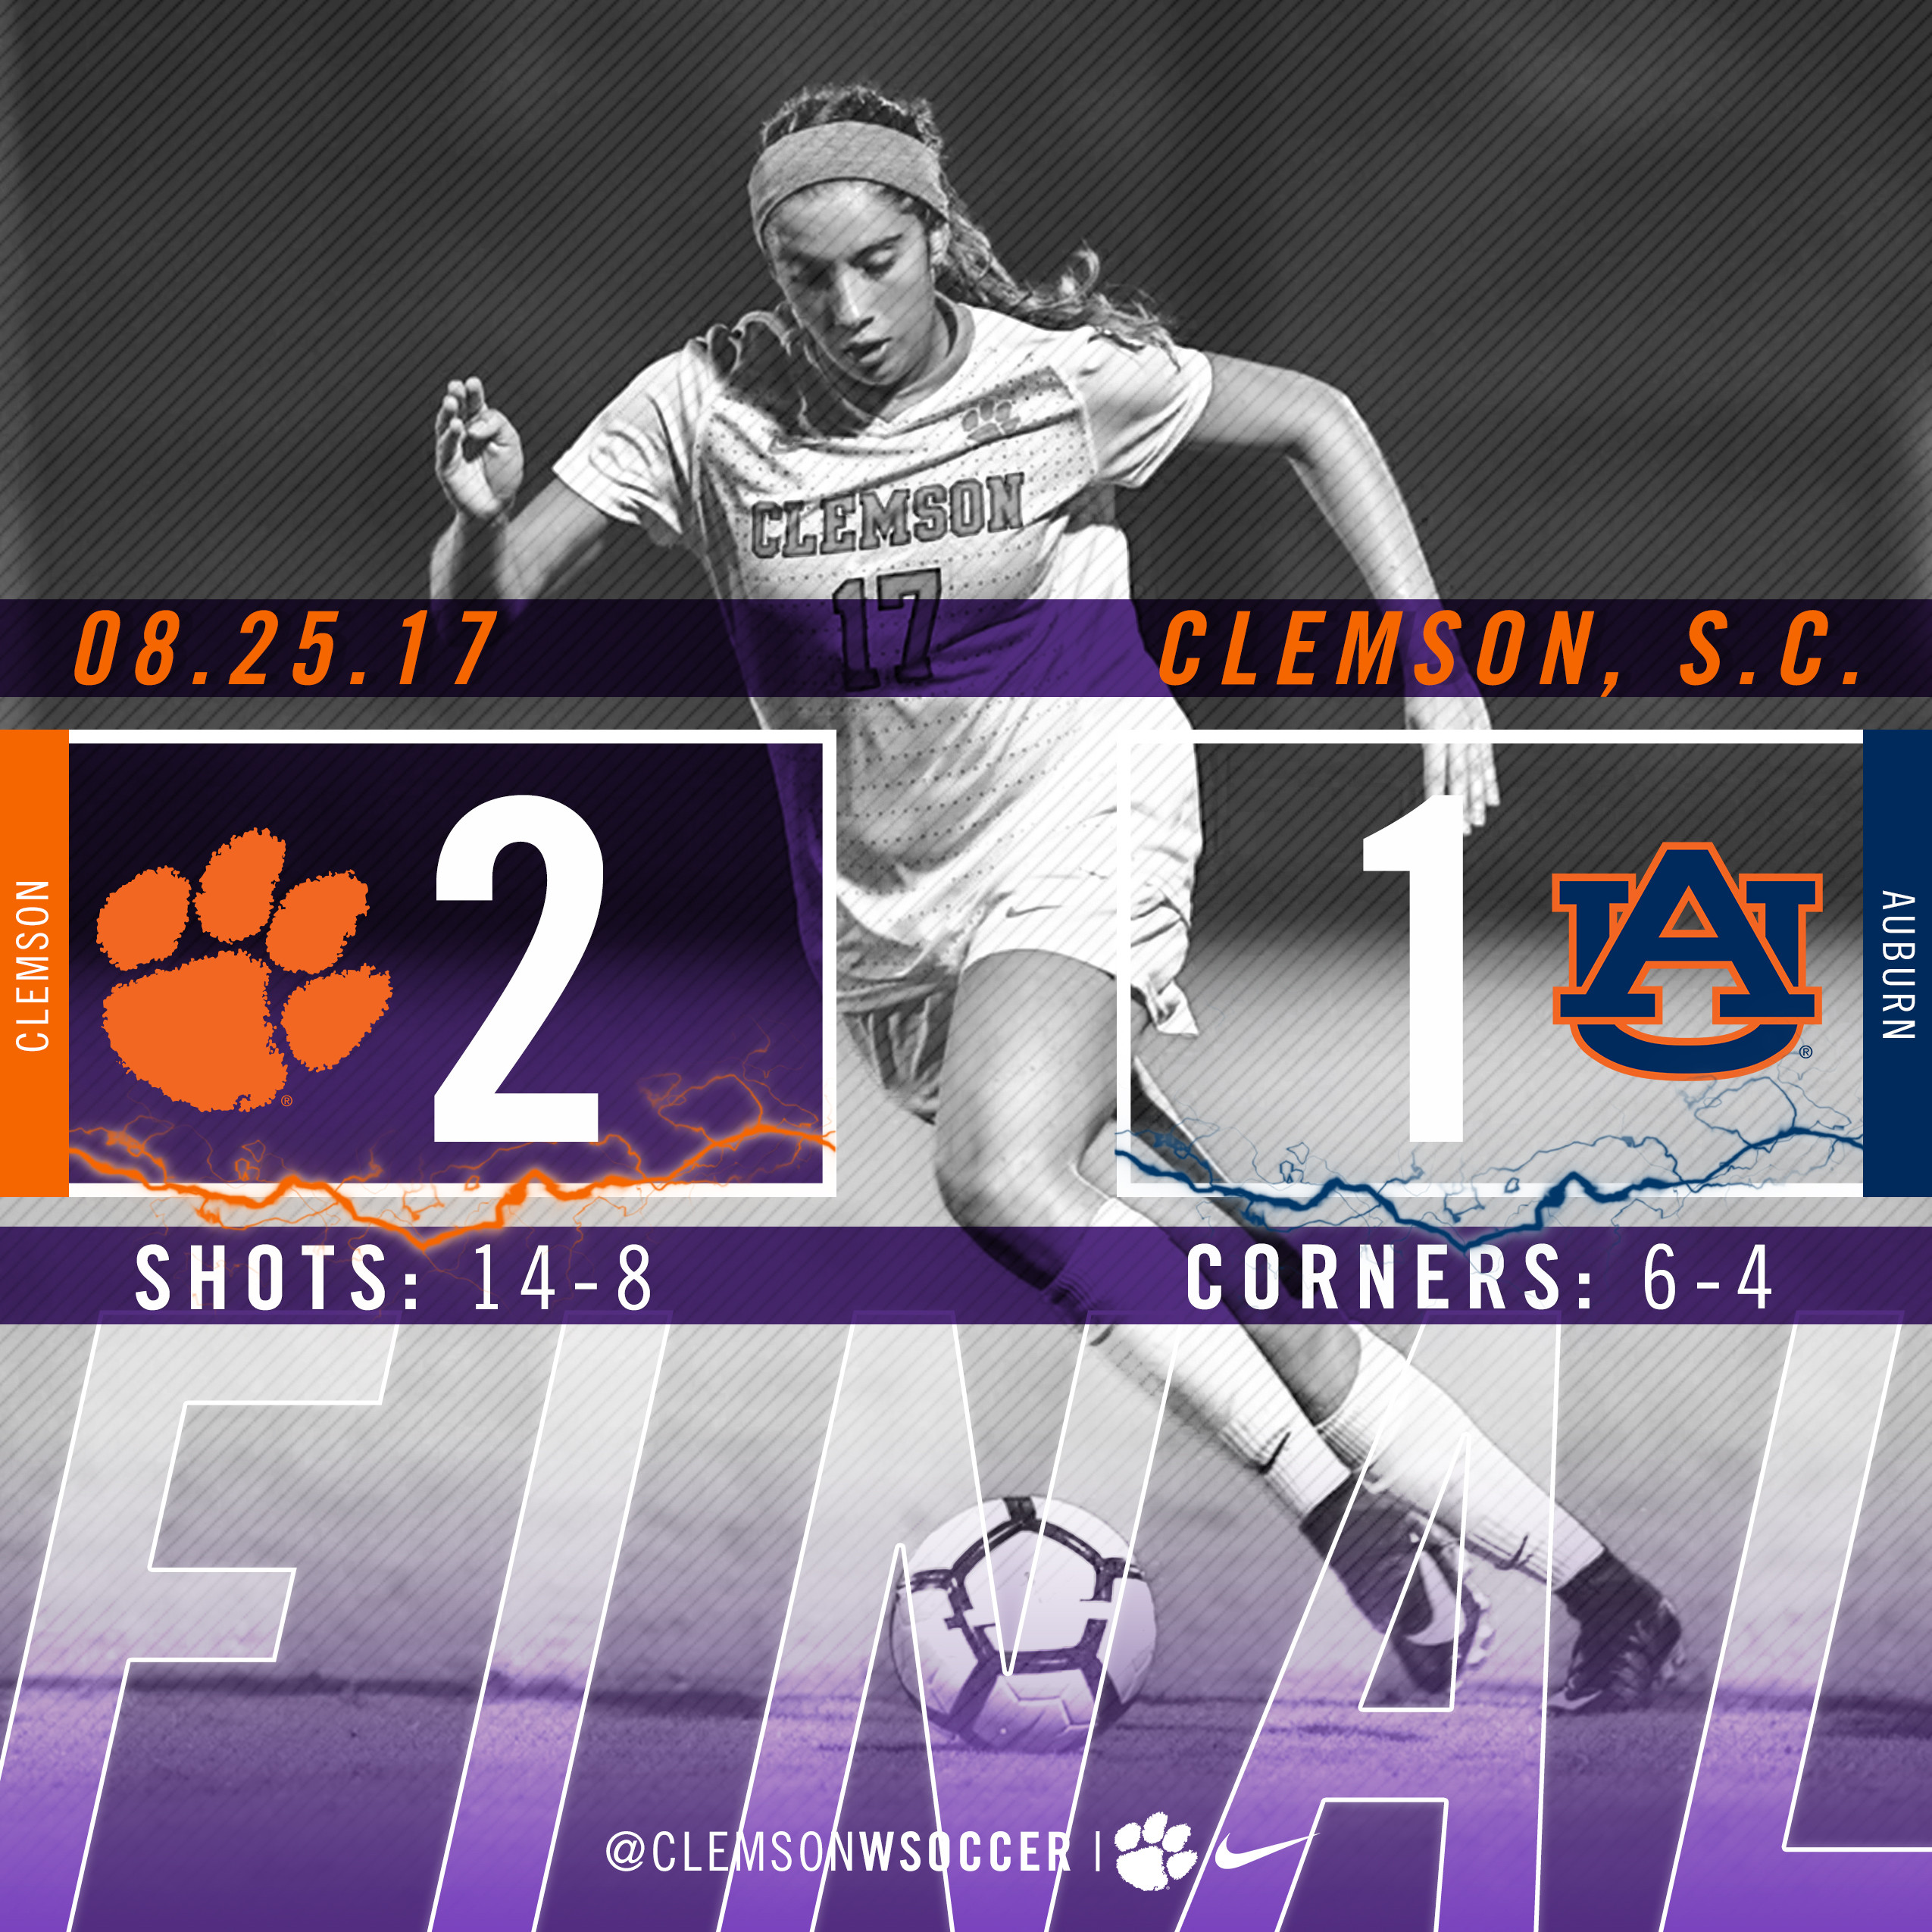 No. 13 Clemson Defeats No. 20 Auburn 2-1 in Double-Overtime